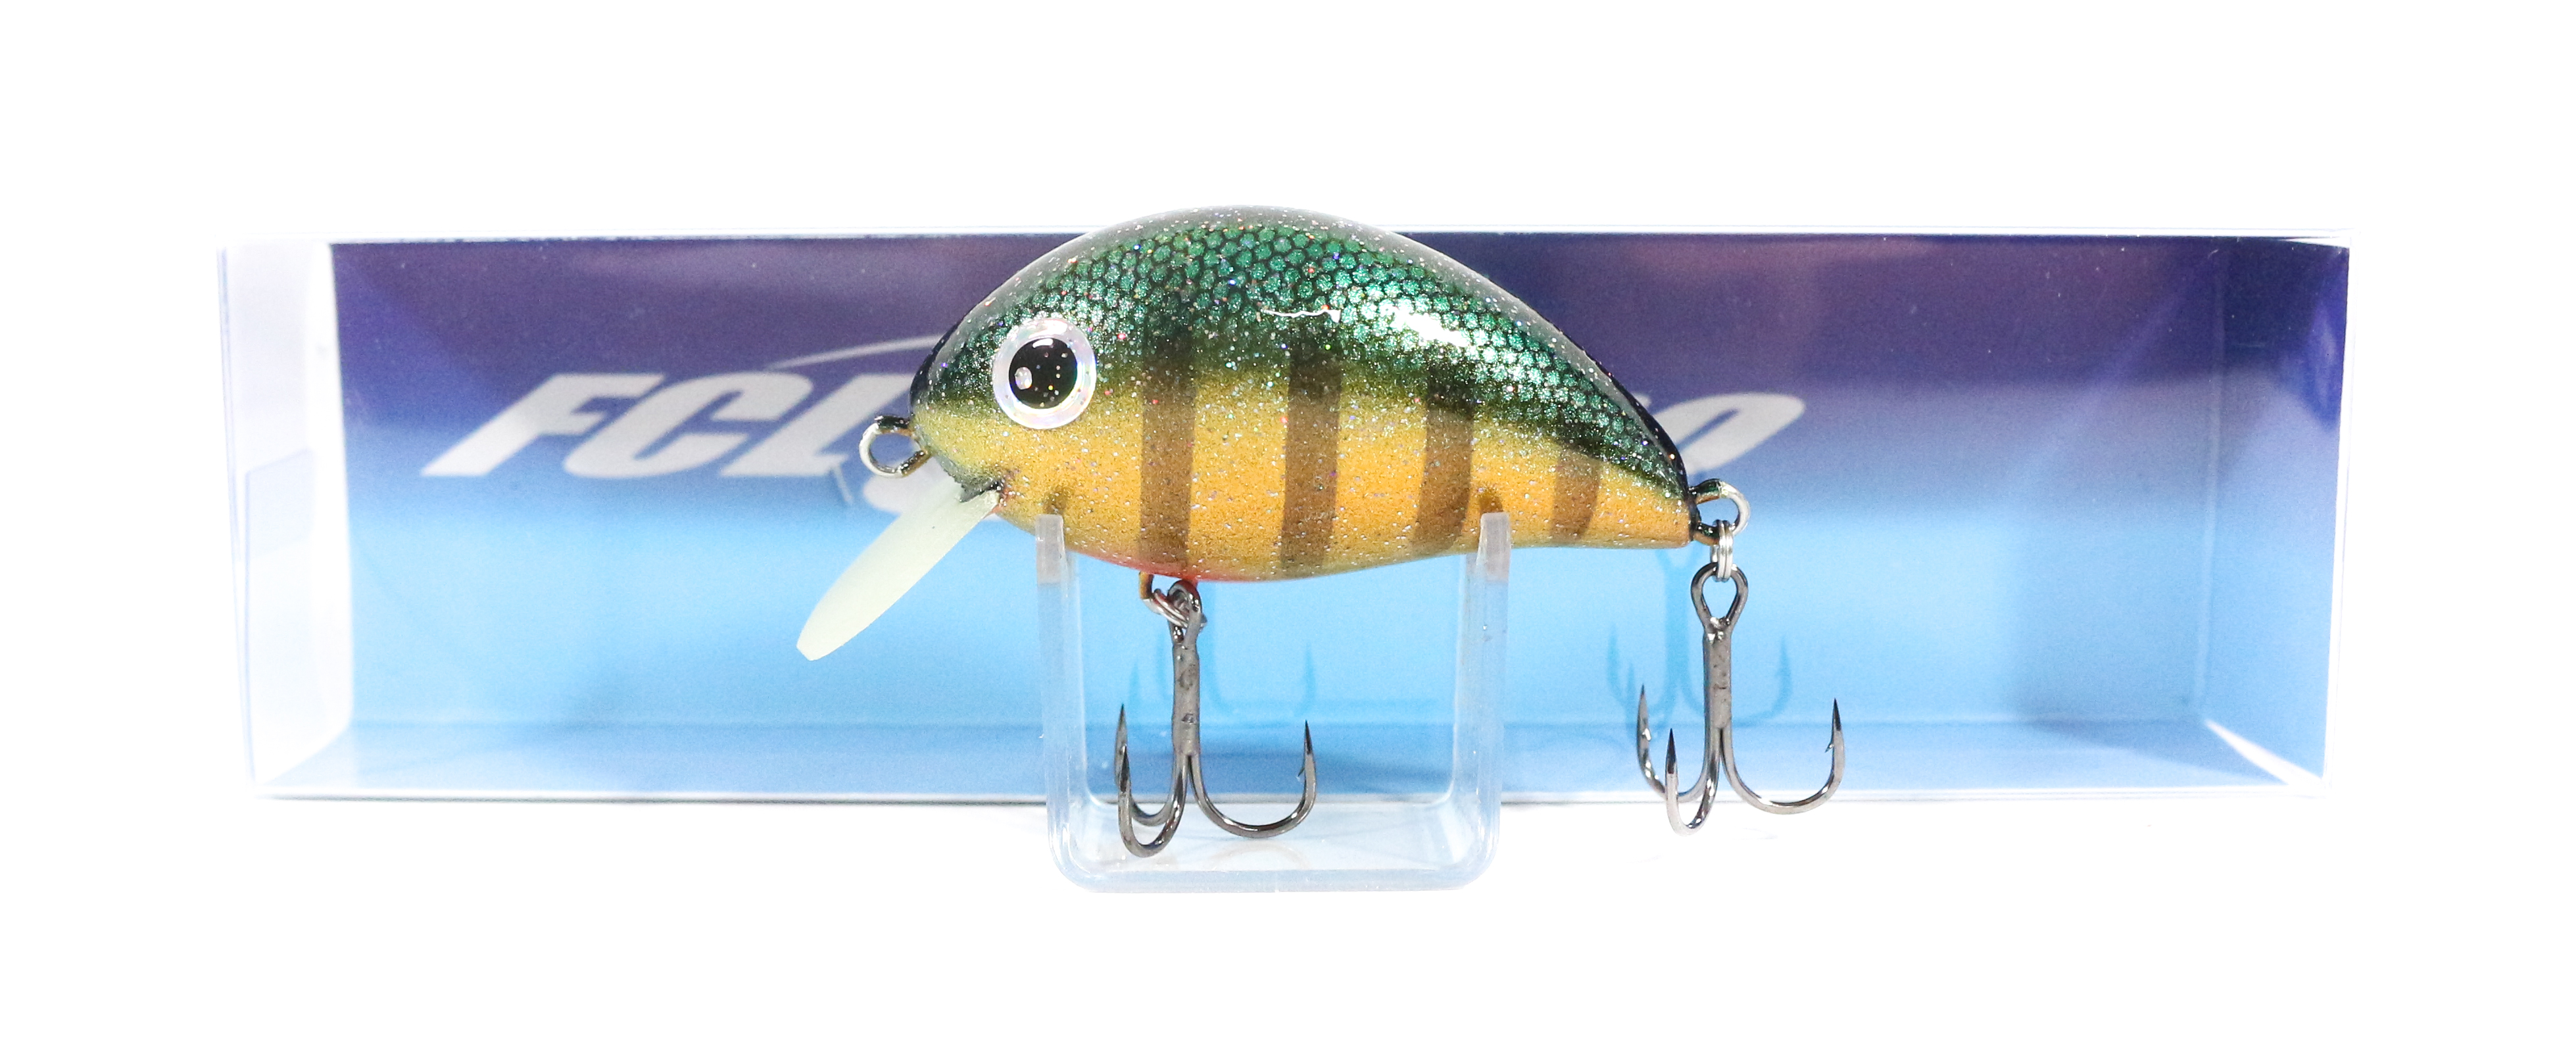 FCL Labo Ke-tu 55 Floating Lure GPCH (4723)